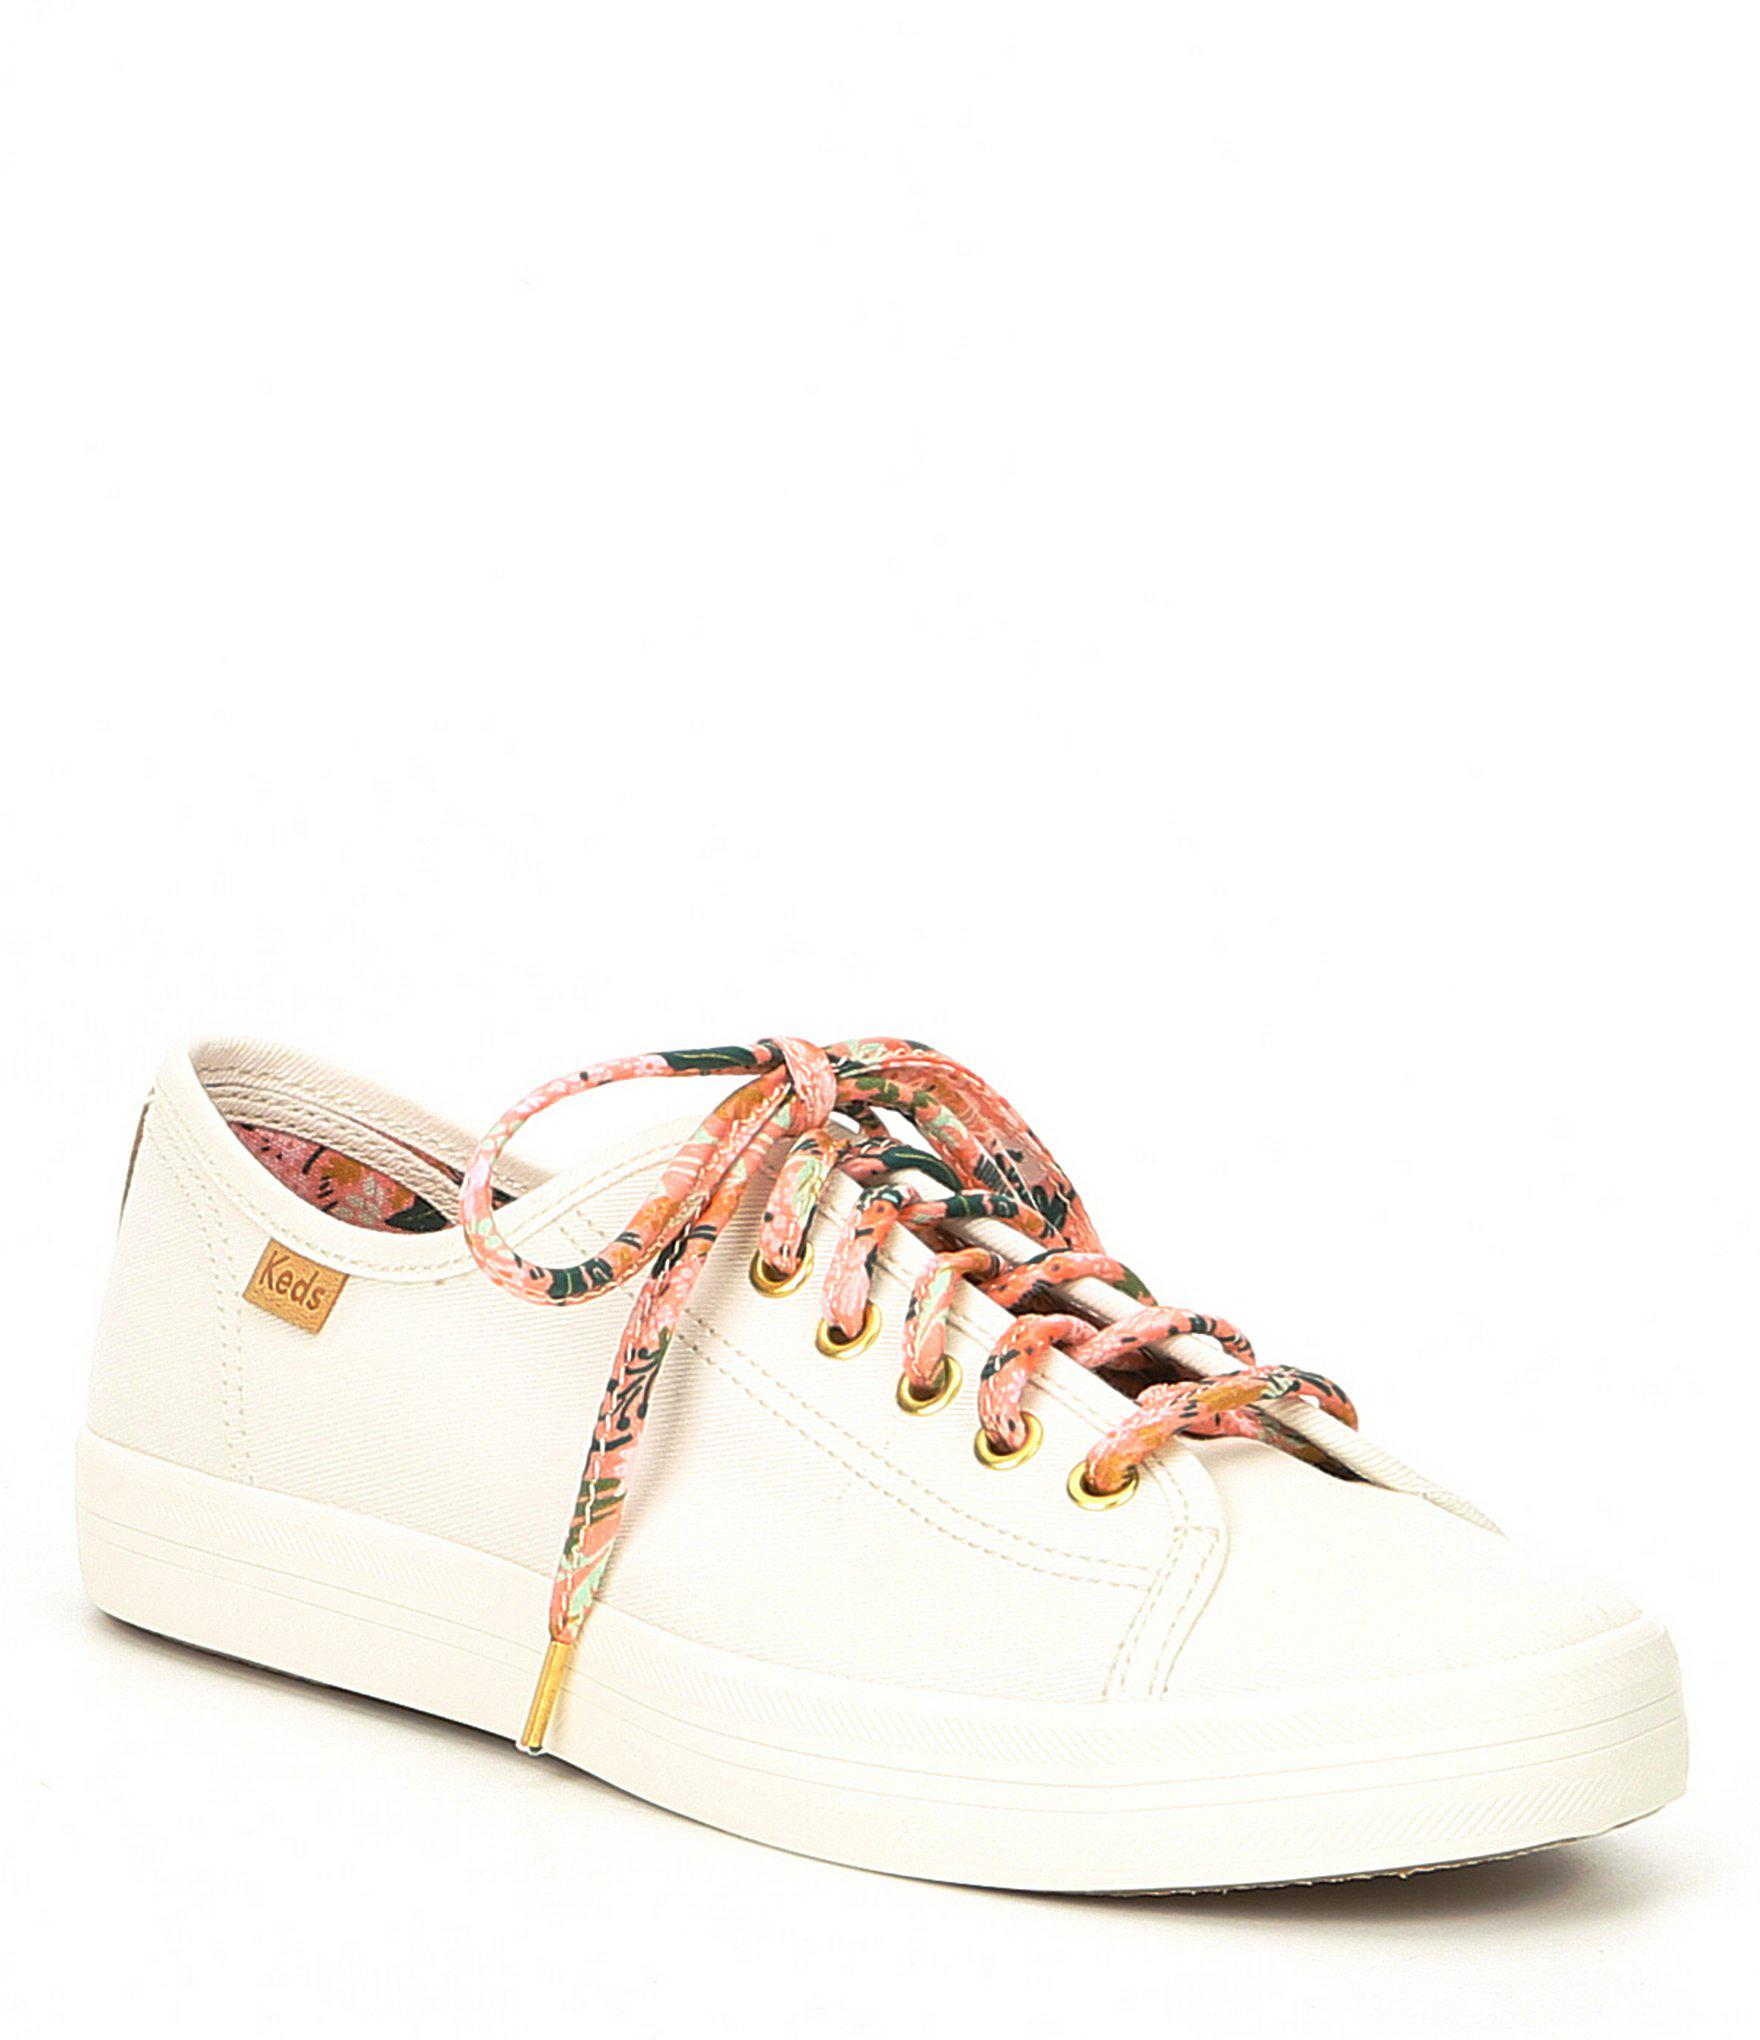 9fd18cd246 Lyst - Keds X Rifle Paper Co. Kickstart Meadow Floral Sneakers